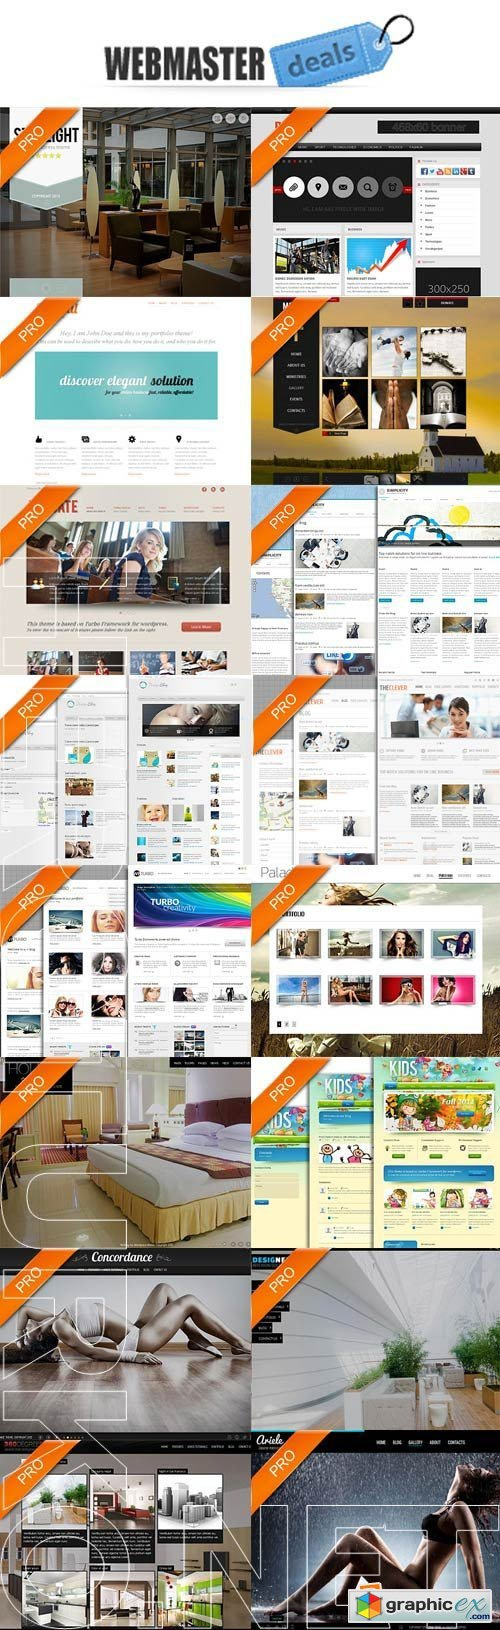 Webmaster-Deals - 17 Awesome Wordpress Themes